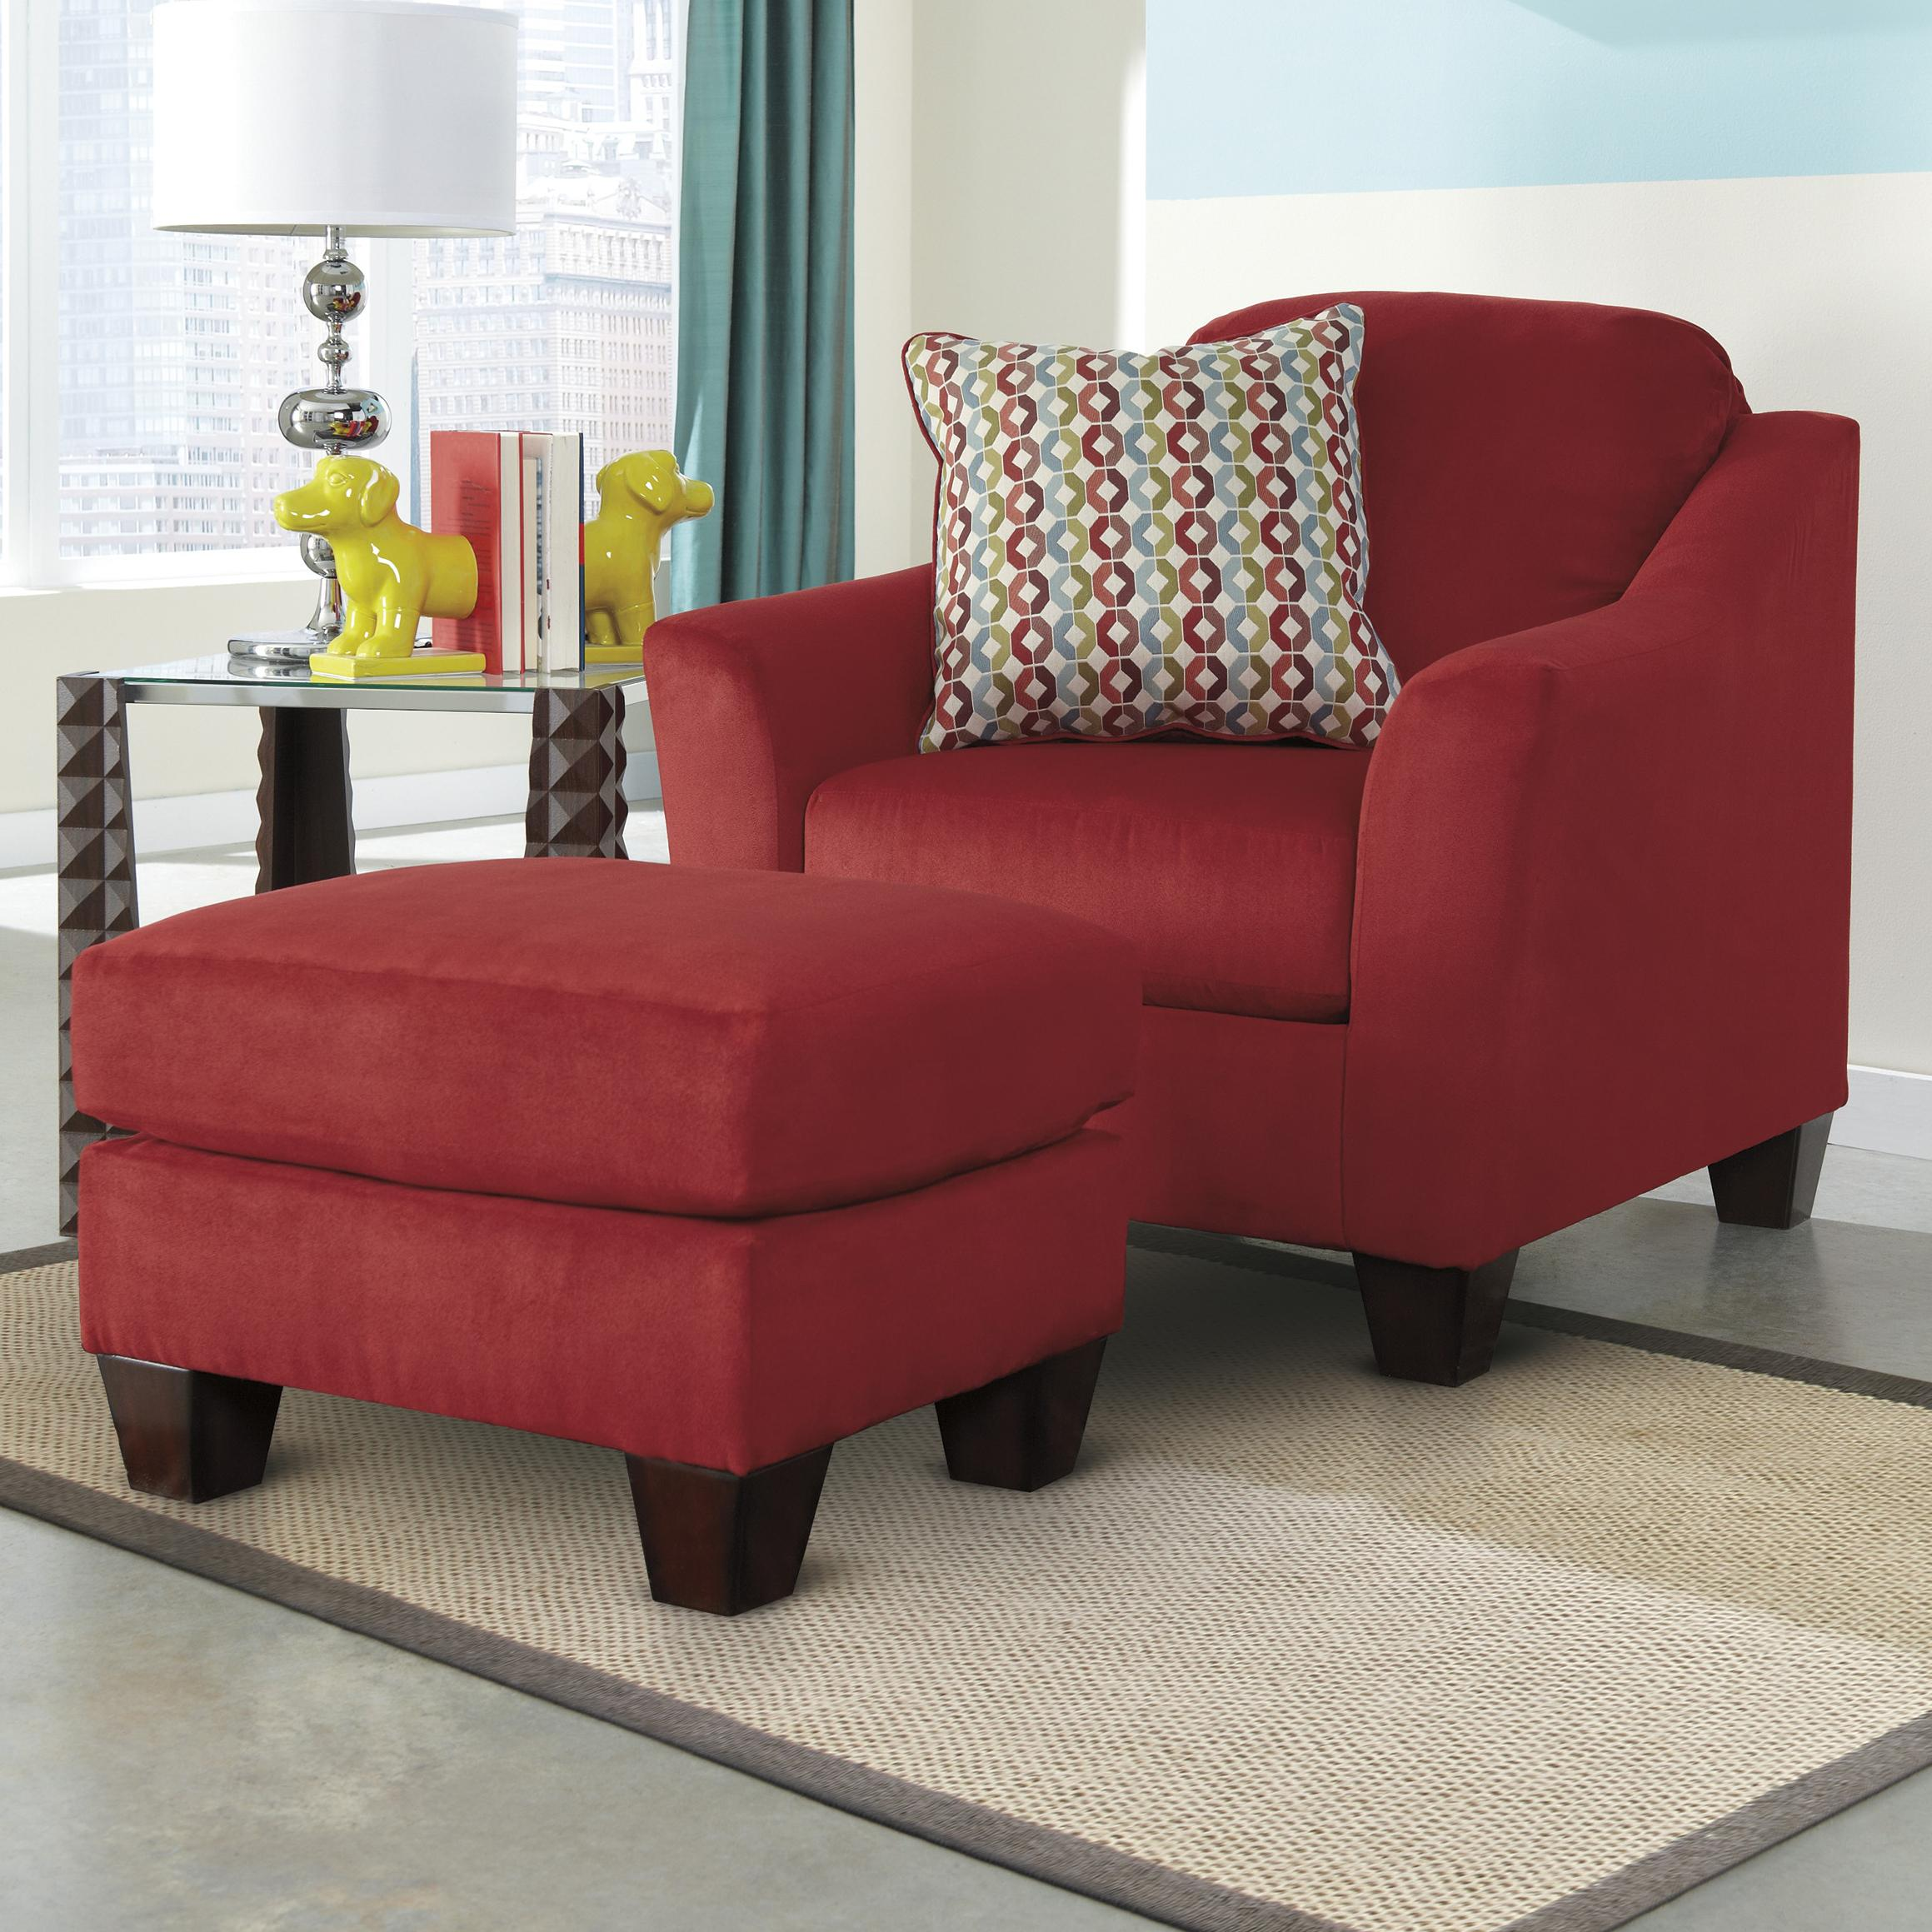 Signature Design by Ashley Hannin - Spice Chair & Ottoman - Item Number: 9580120+14